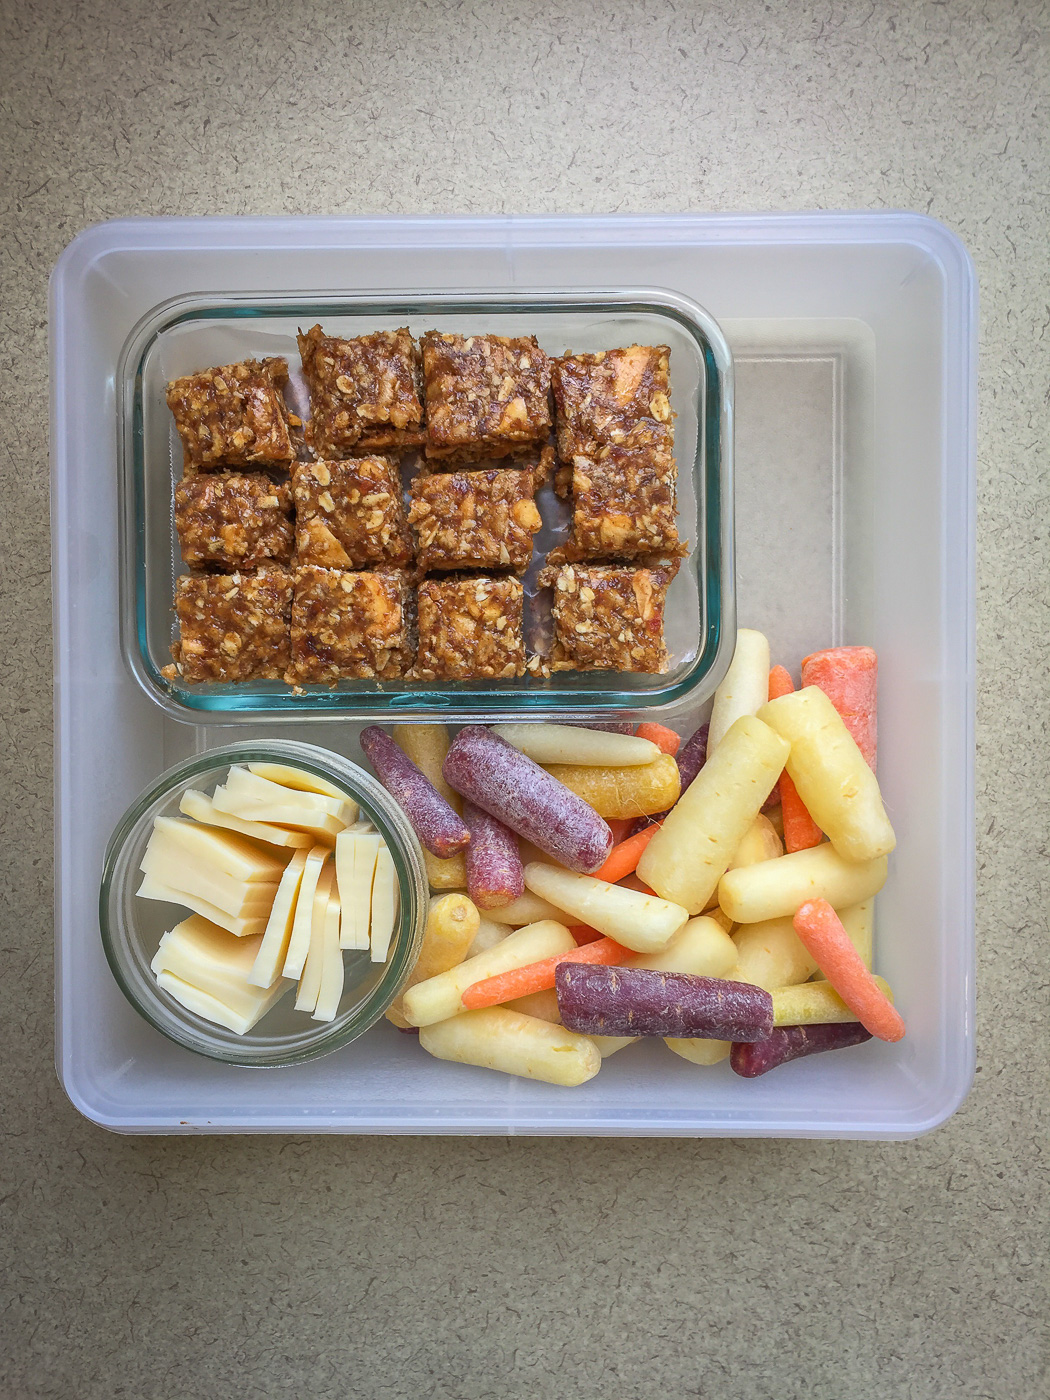 Square plastic container with granola bars, baby carrots, and mozzarella cheese